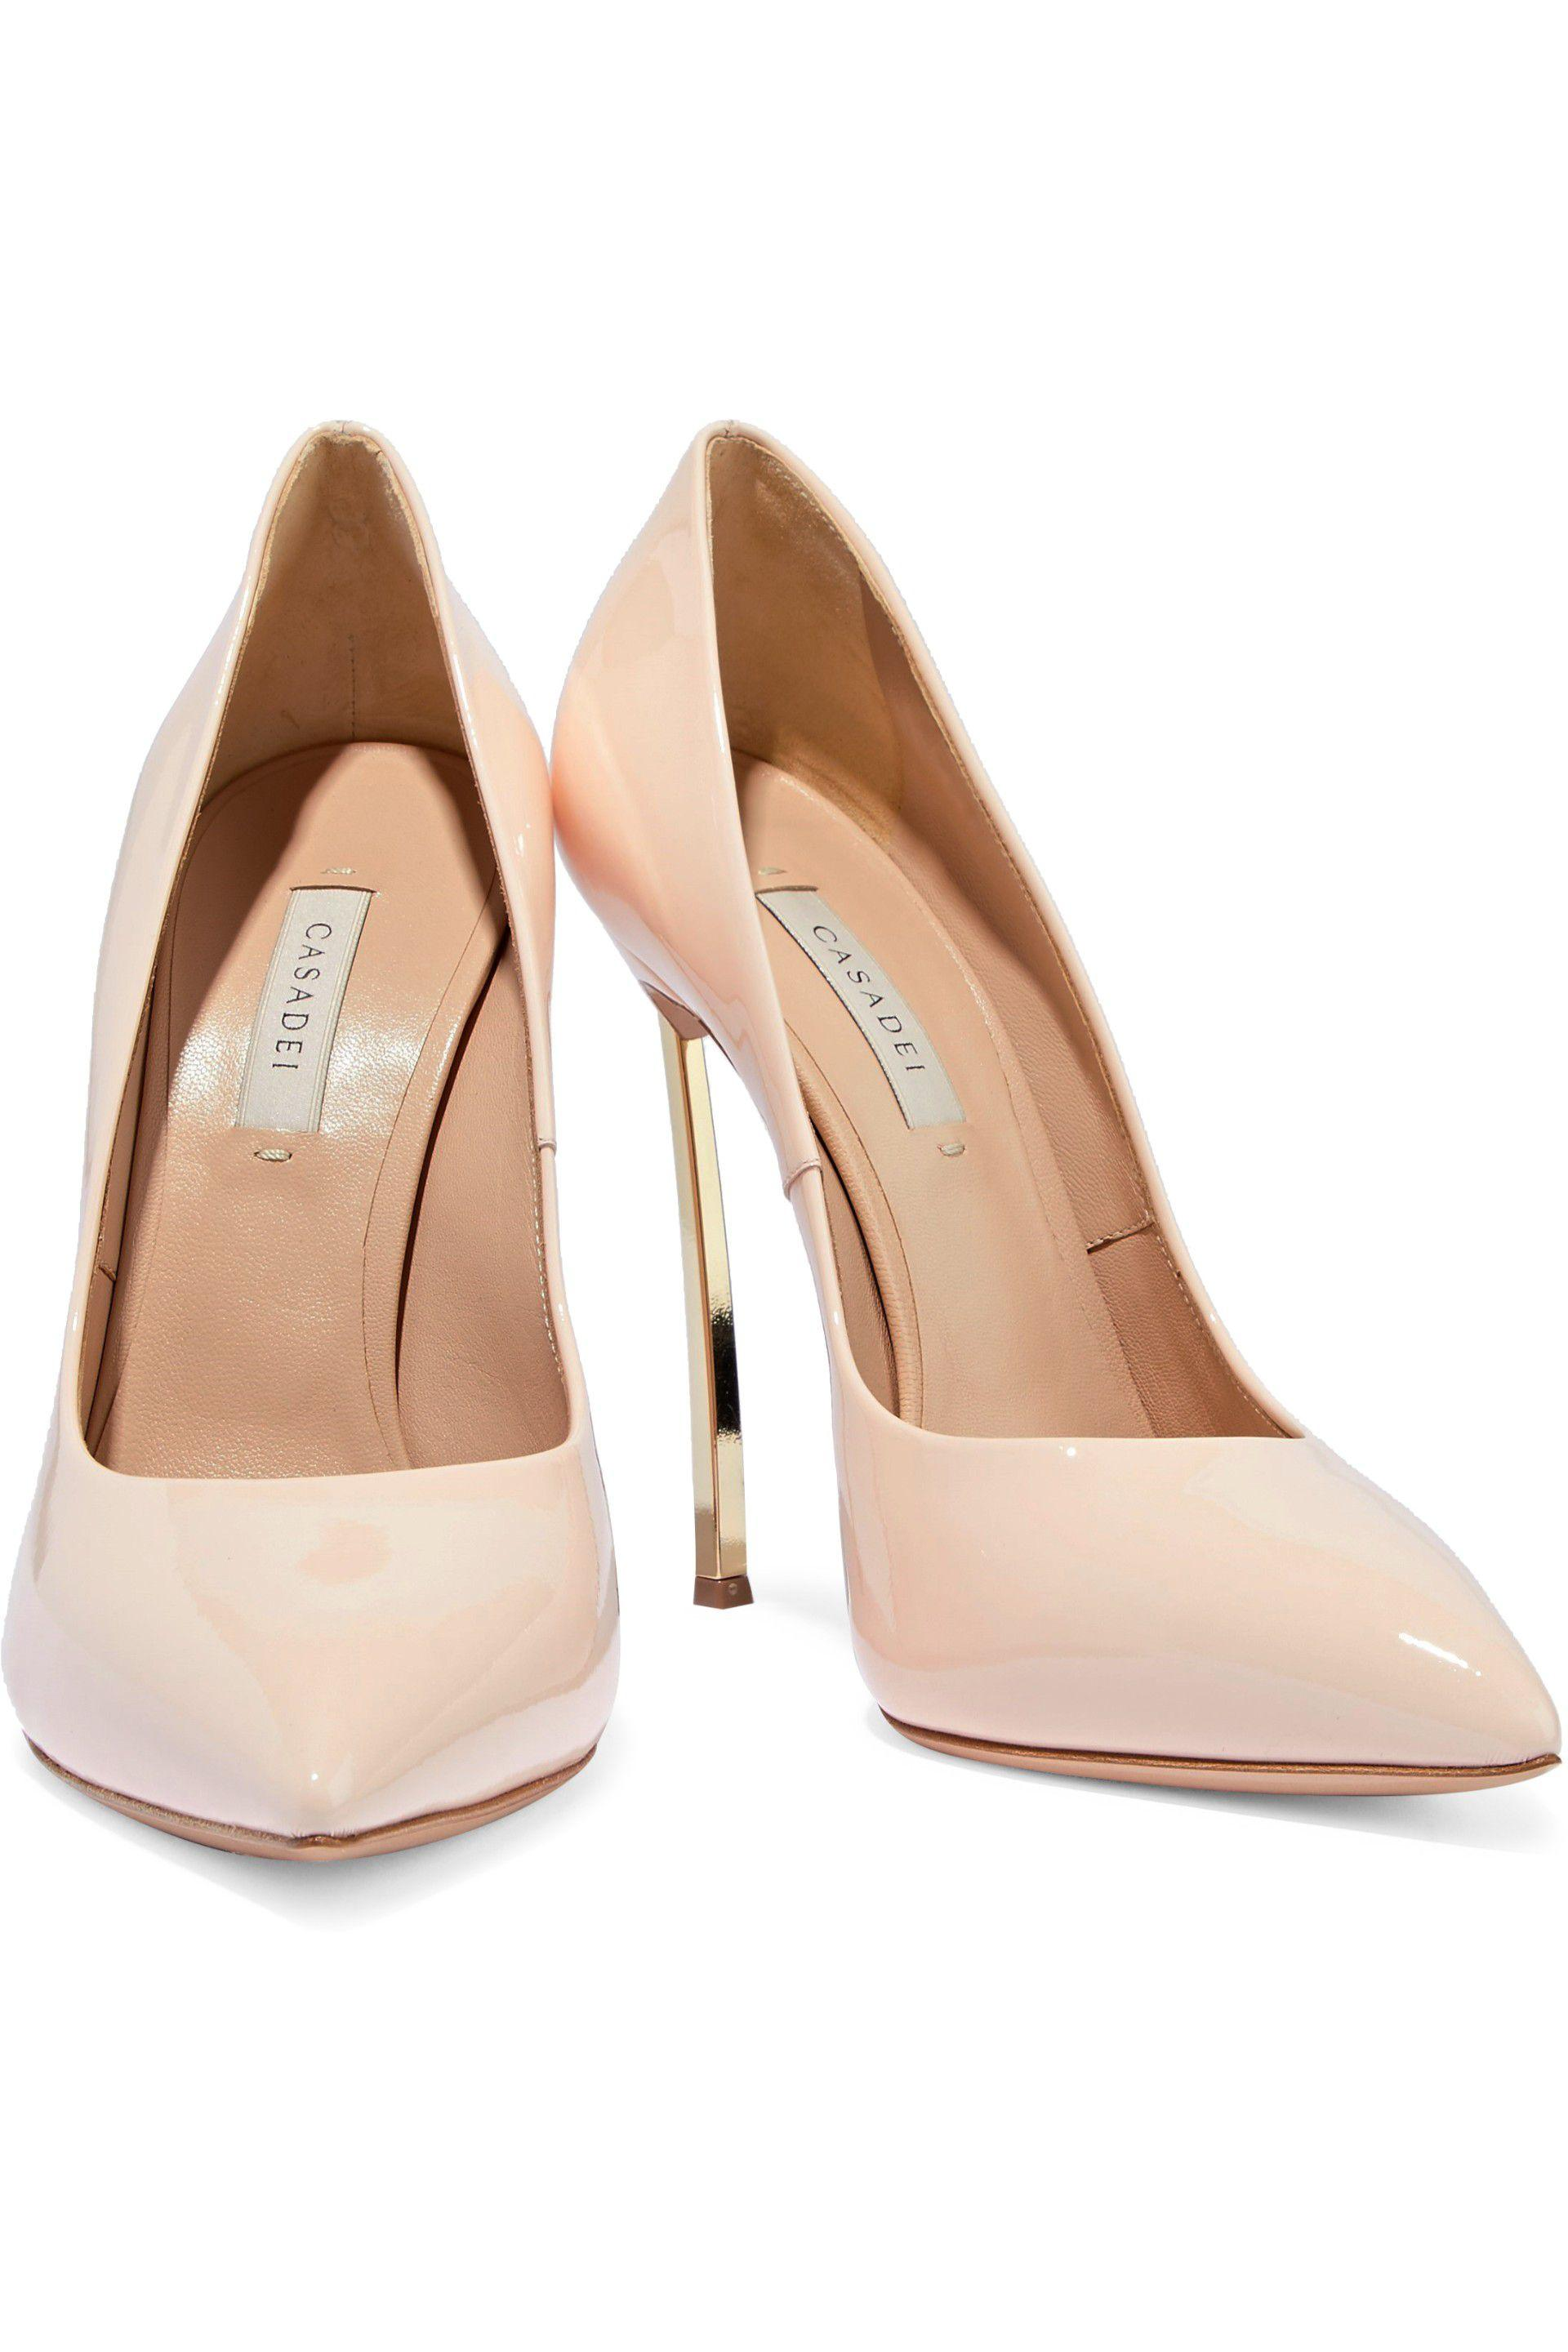 4681ea581d2 Lyst - Casadei Woman Patent-leather Pumps Beige in Natural - Save 35%